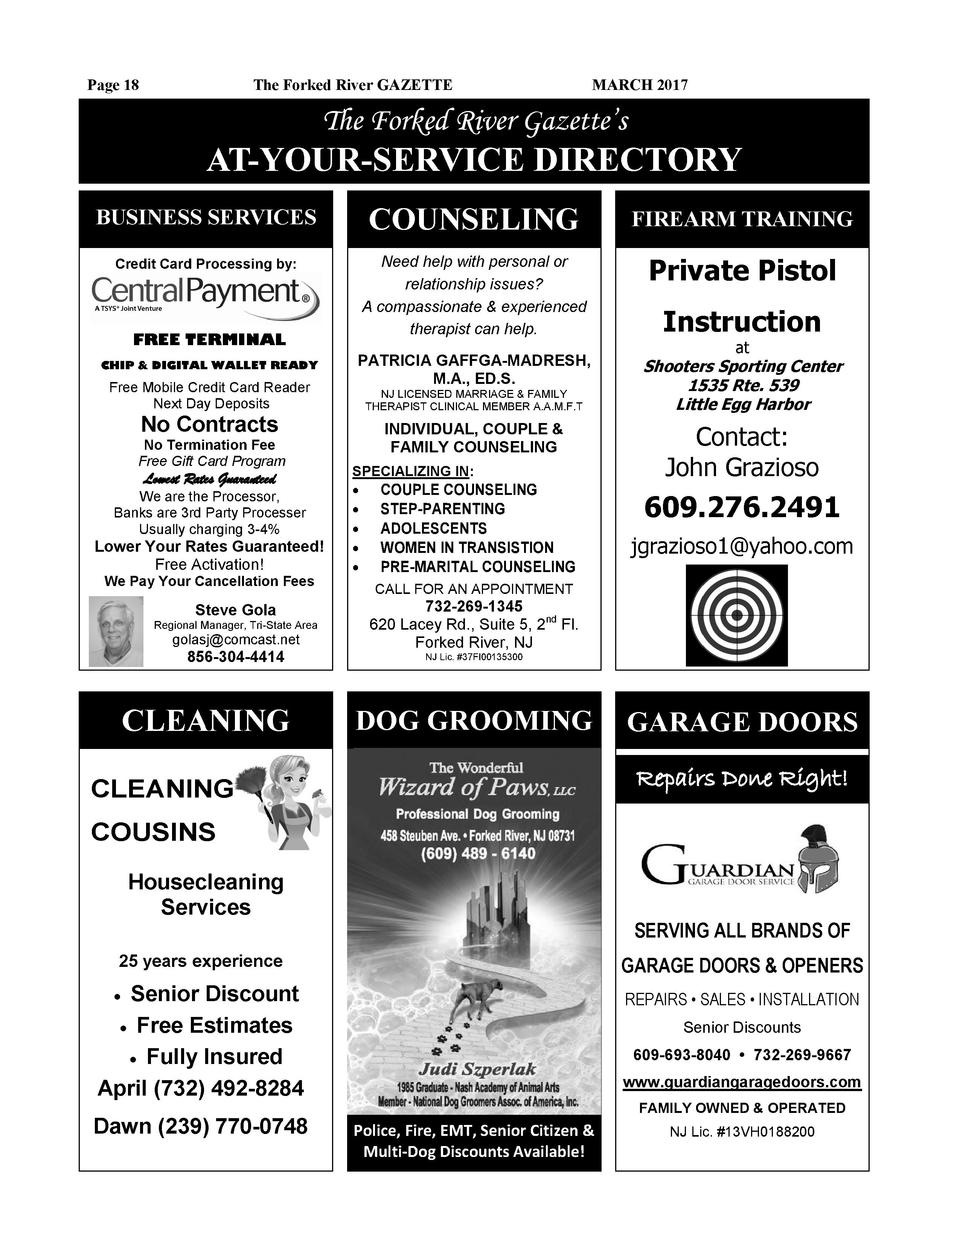 Page 18  The Forked River GAZETTE  MARCH 2017  The Forked River Gazette   s  AT-YOUR-SERVICE DIRECTORY BUSINESS SERVICES  ...